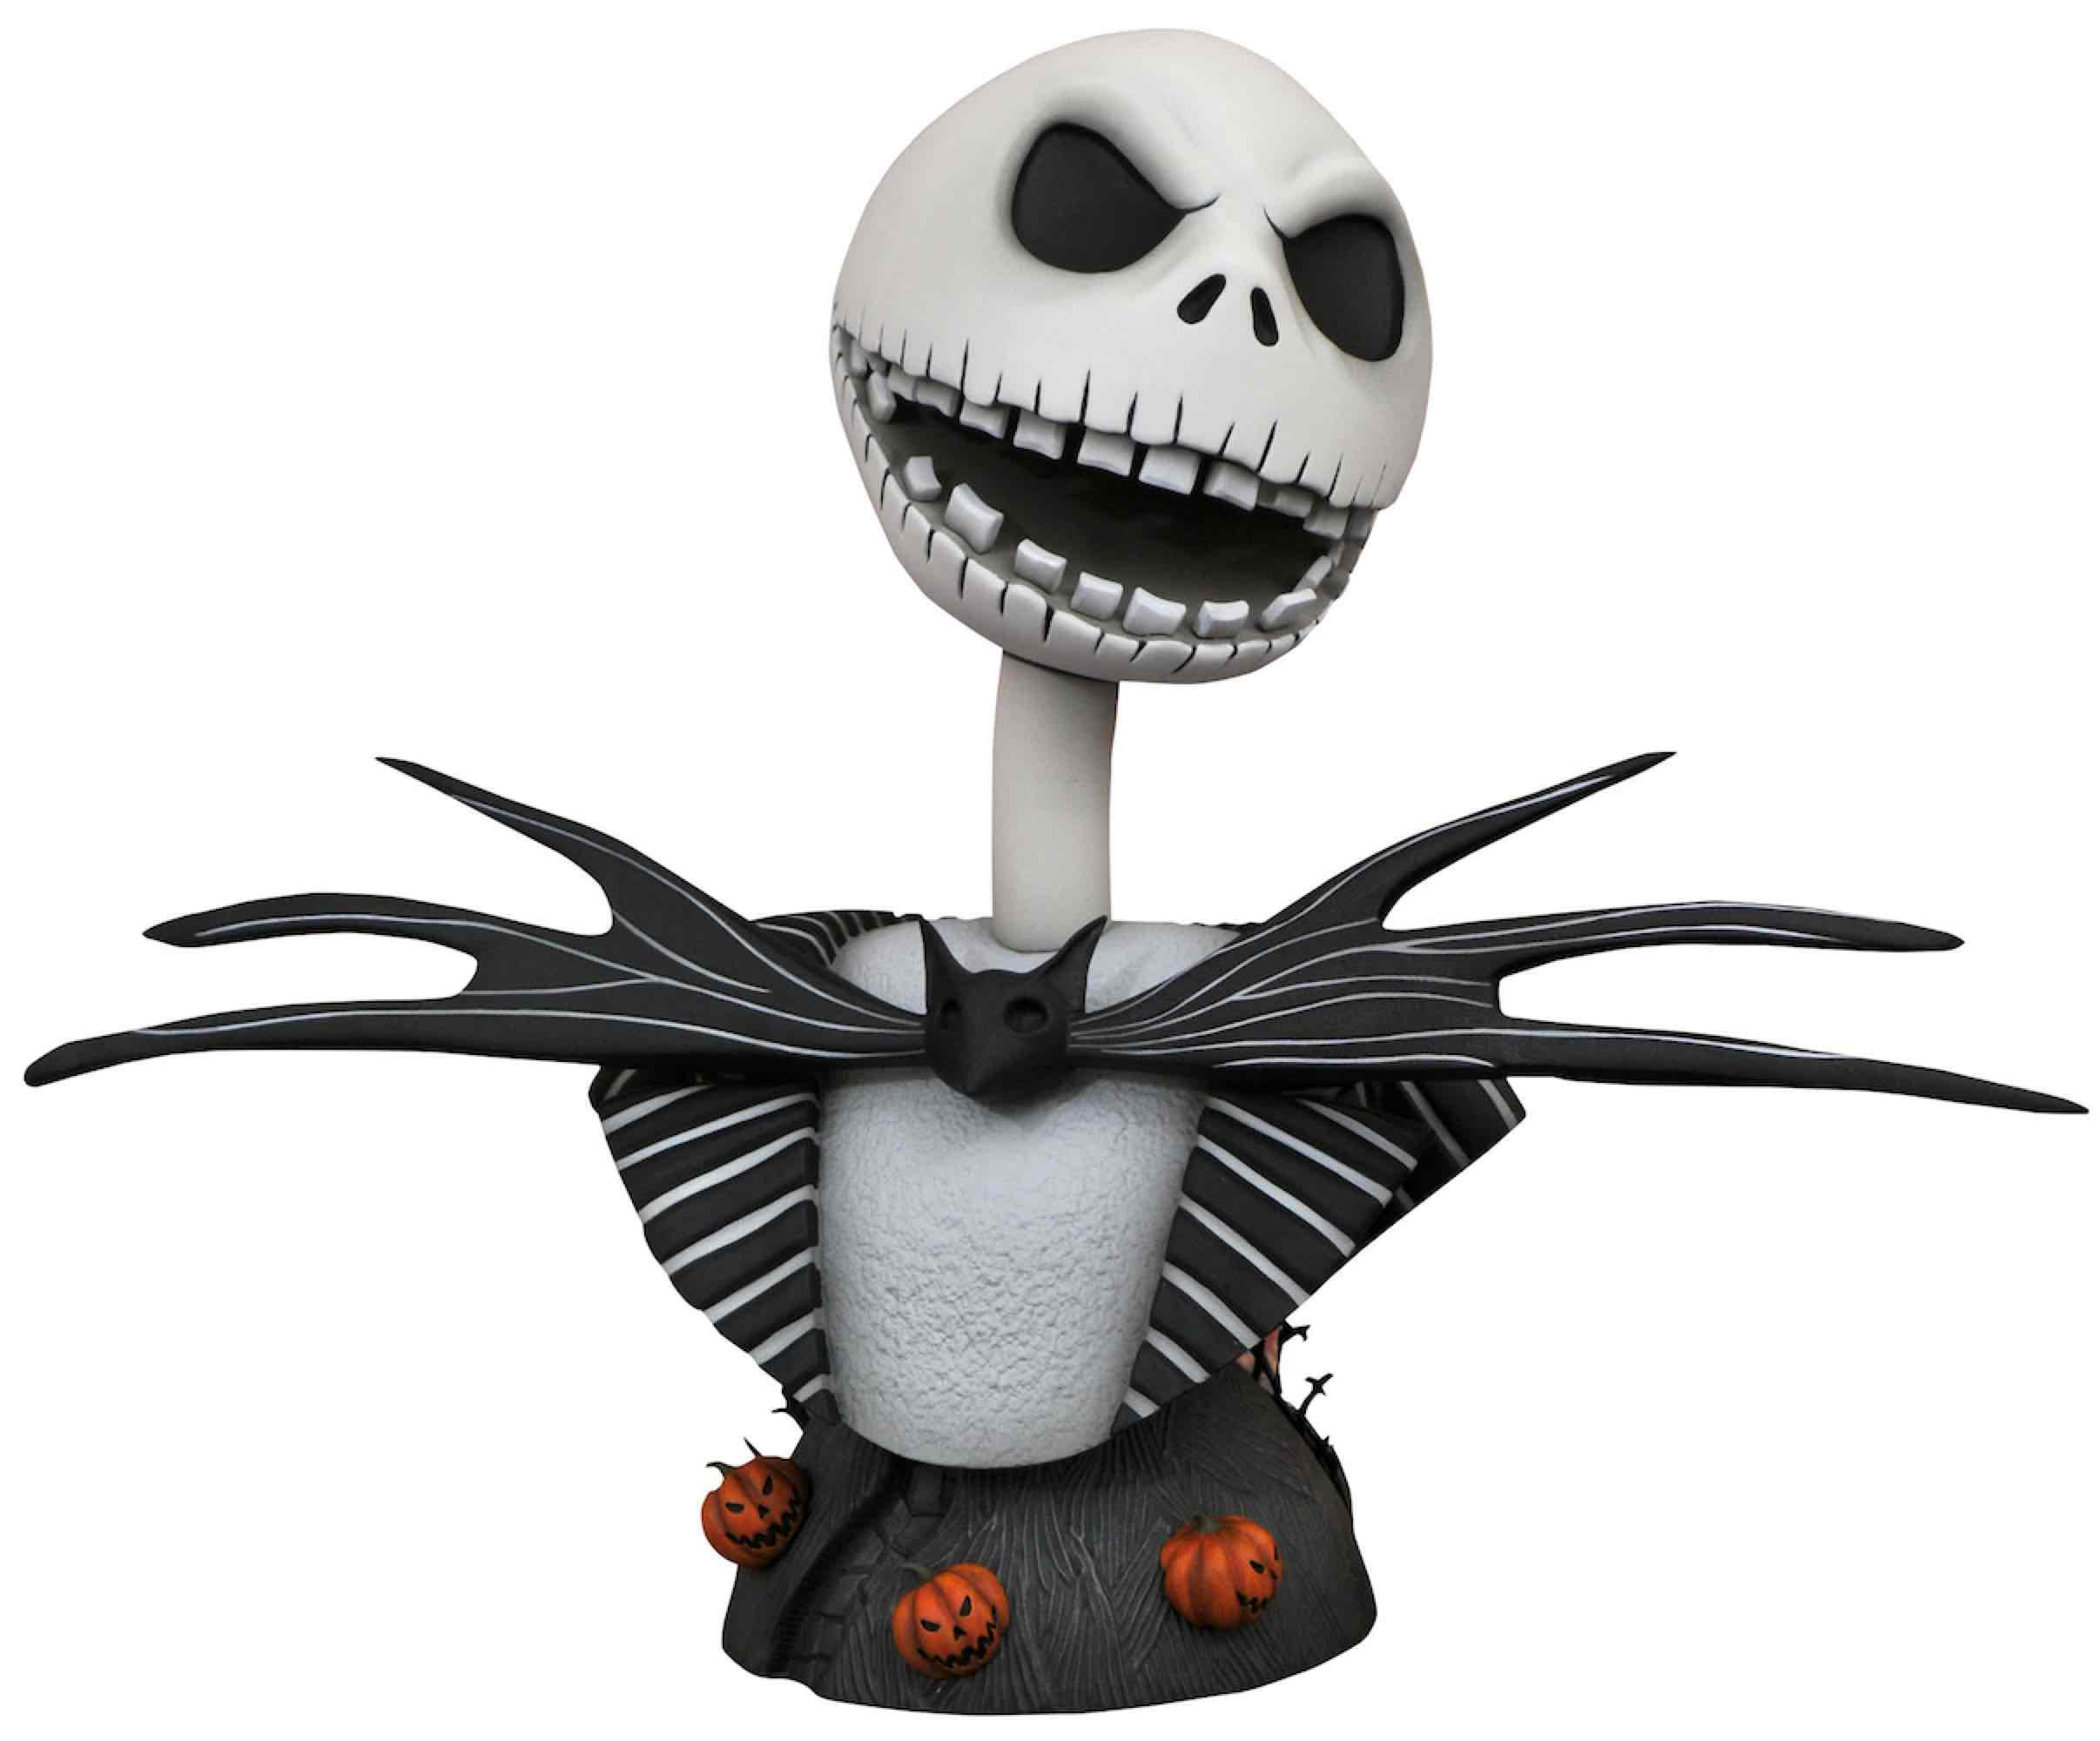 JACK SKELLINGTON BUSTO RESINA 25 CM 1/2 SCALE LEGENDS IN 3D THE NIGHTMARE BEFORE CHRISTMAS